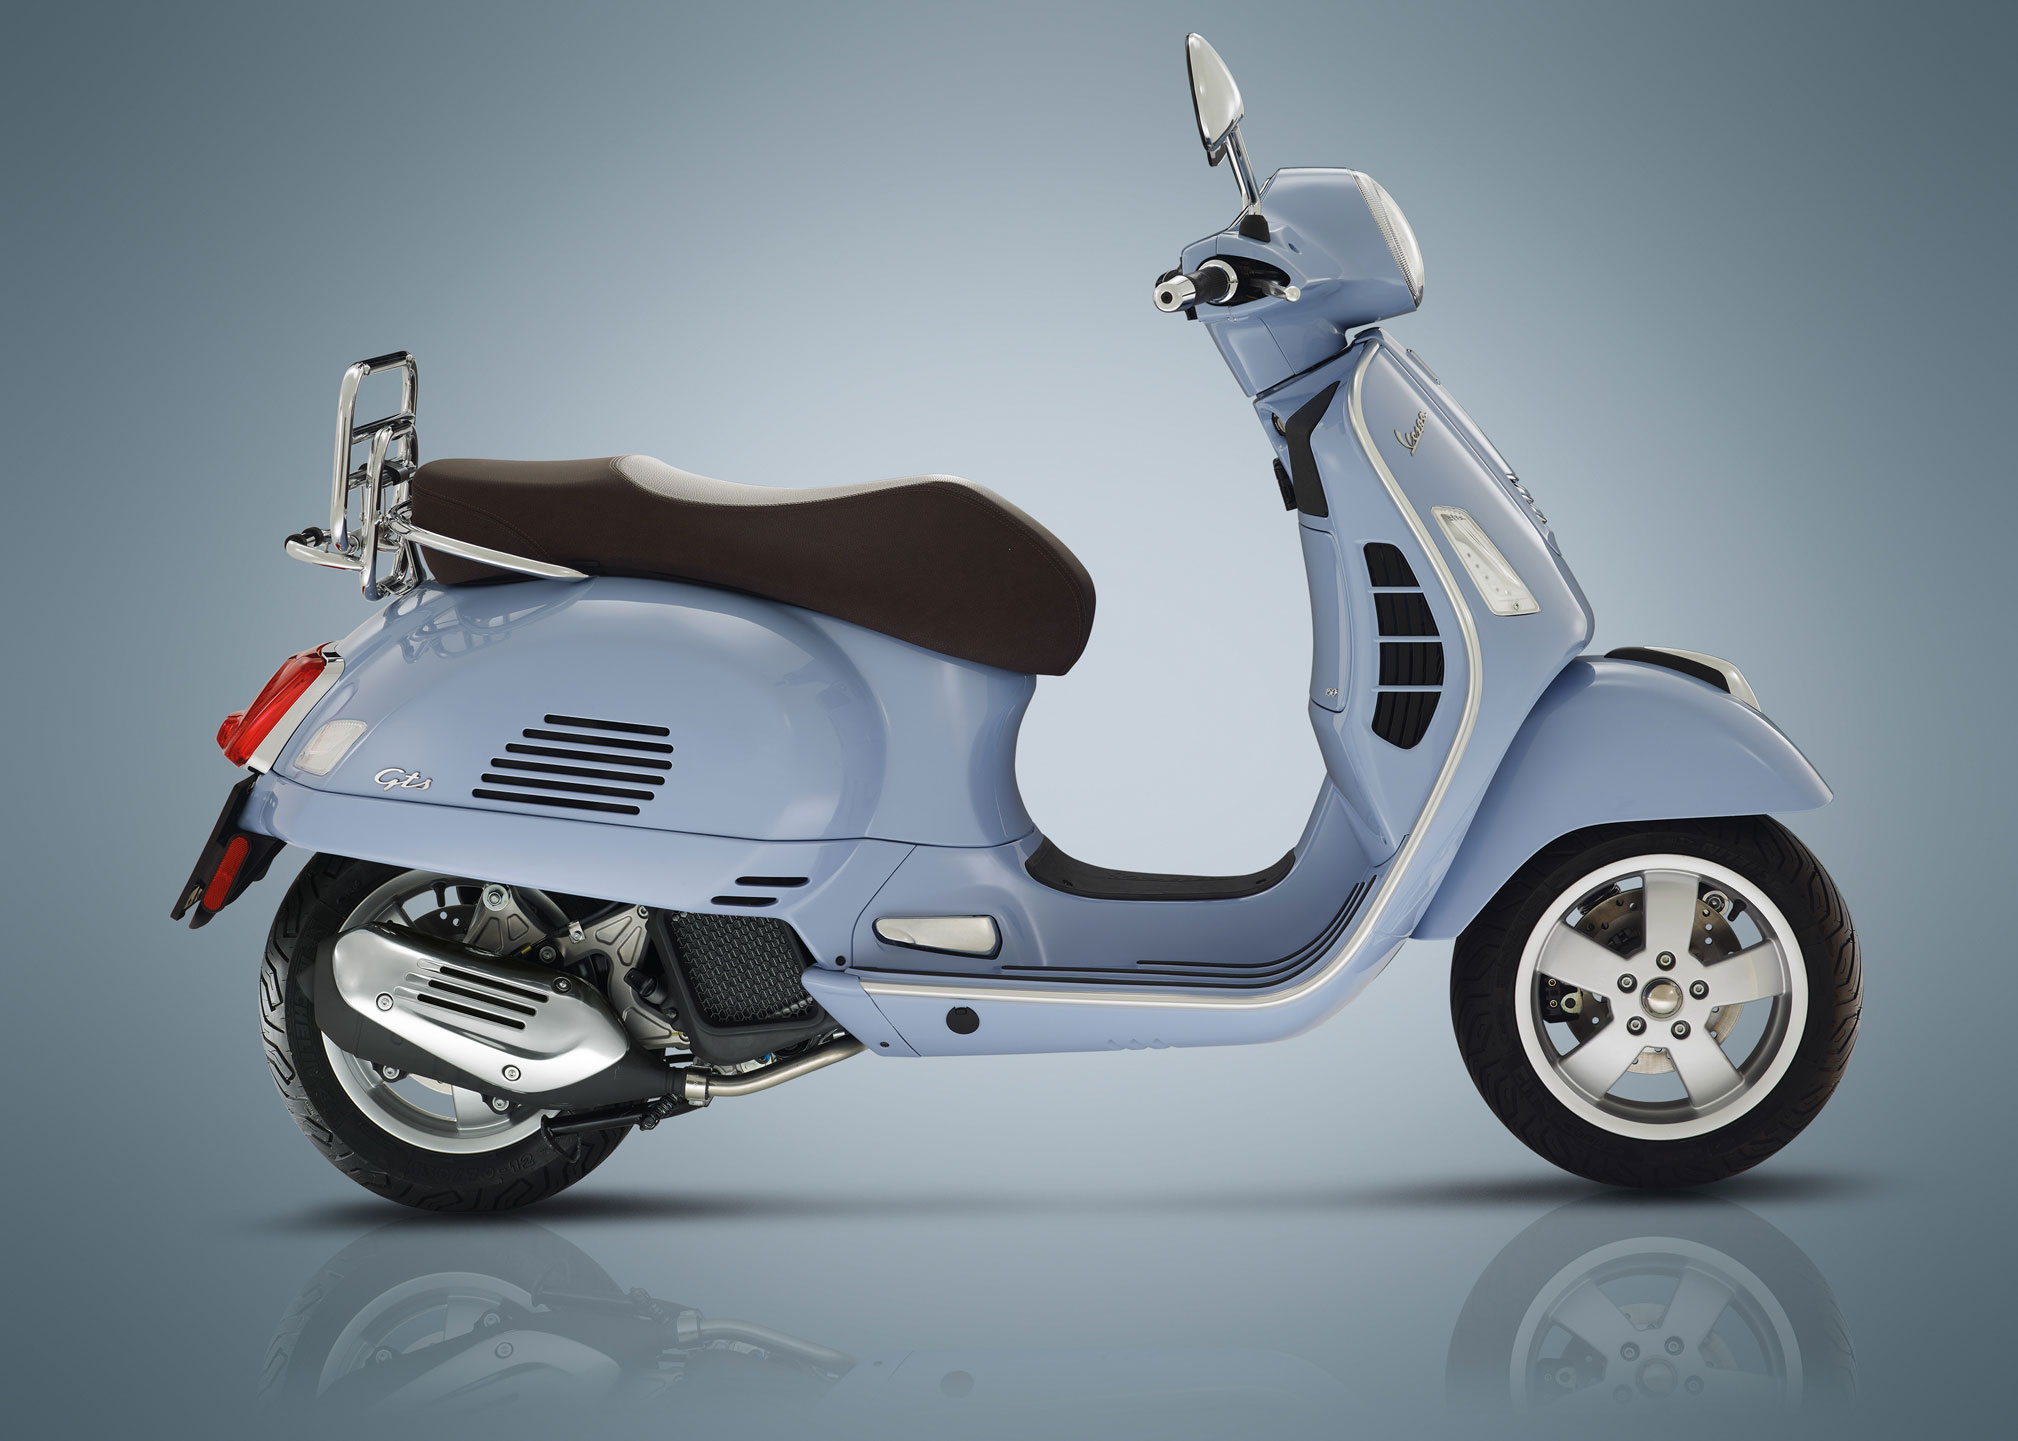 2018 vespa gts150 review total motorcycle. Black Bedroom Furniture Sets. Home Design Ideas